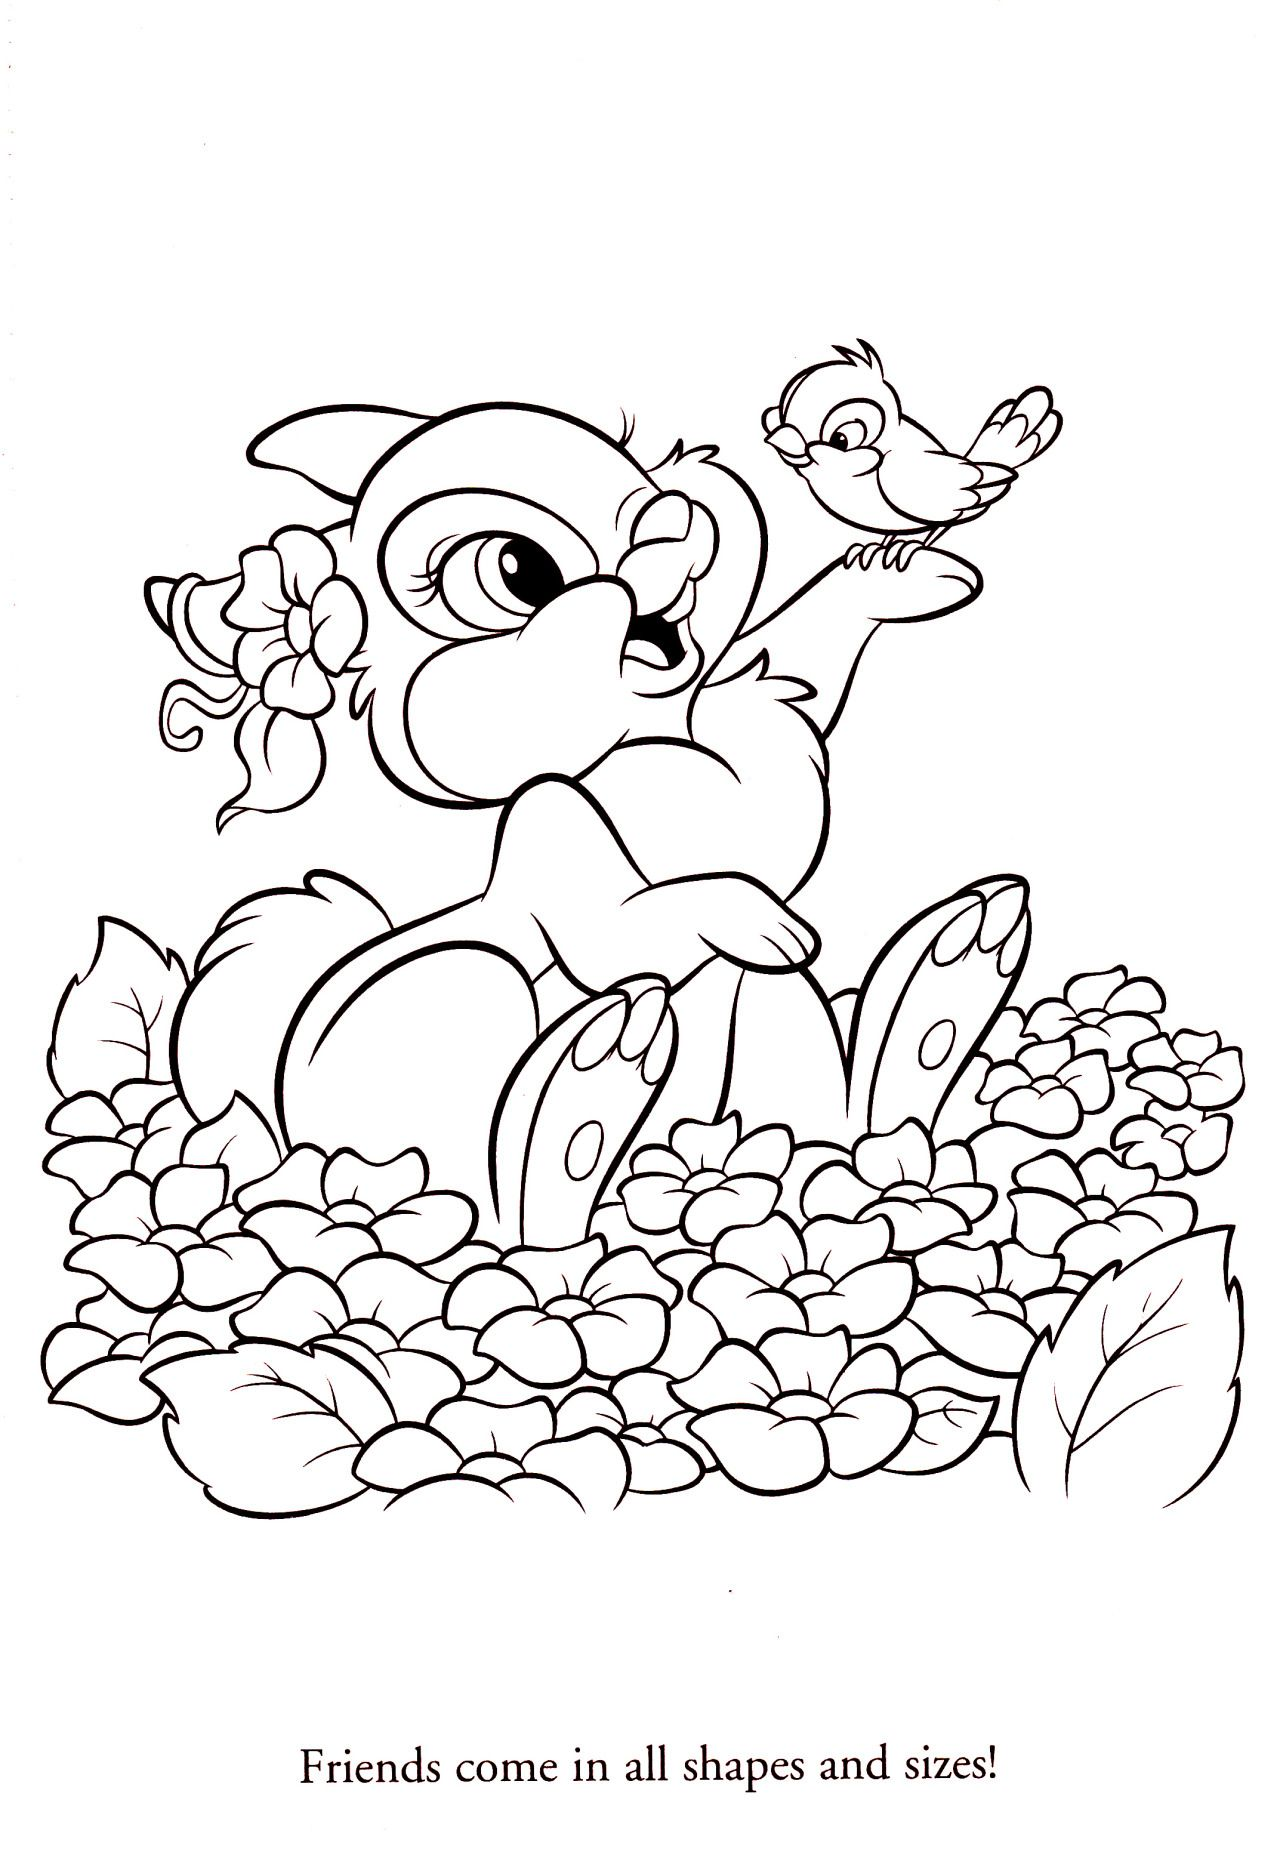 Disney Coloring Pages : Photo | pic | Pinterest | Dibujos ...